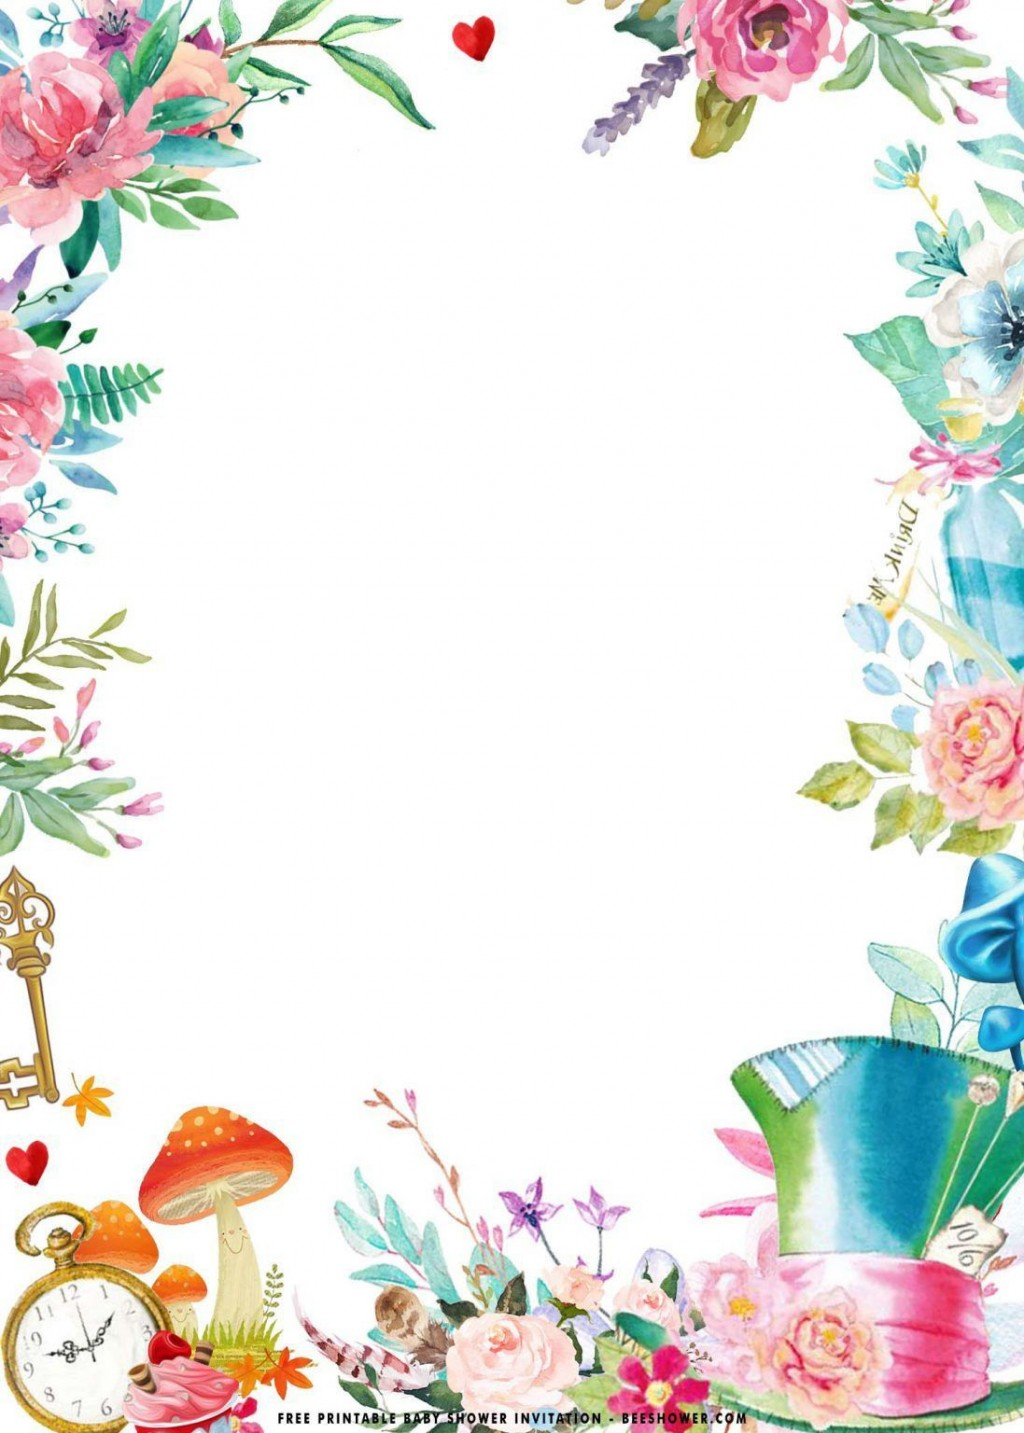 000 Best Alice In Wonderland Party Template Idea  Templates Invitation FreeLarge